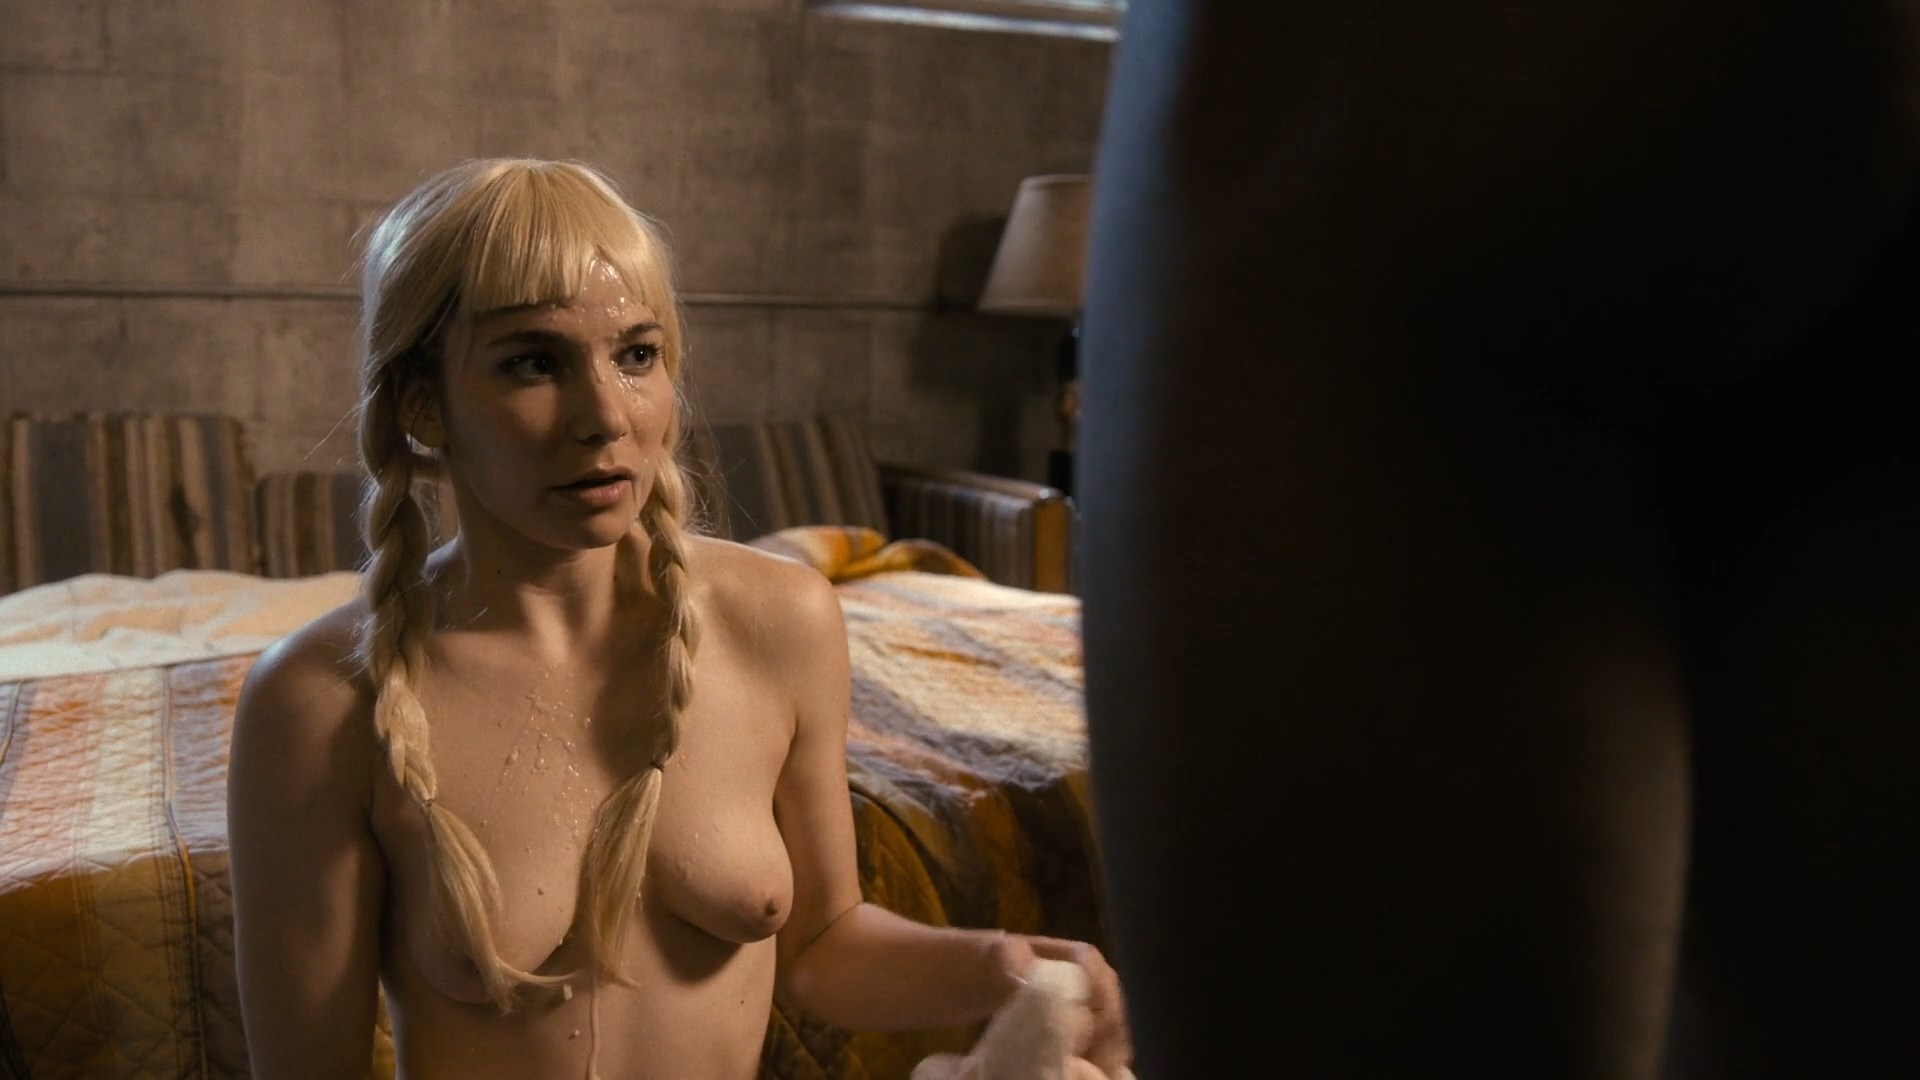 Theme, will maggie gyllenhaal nude pictures